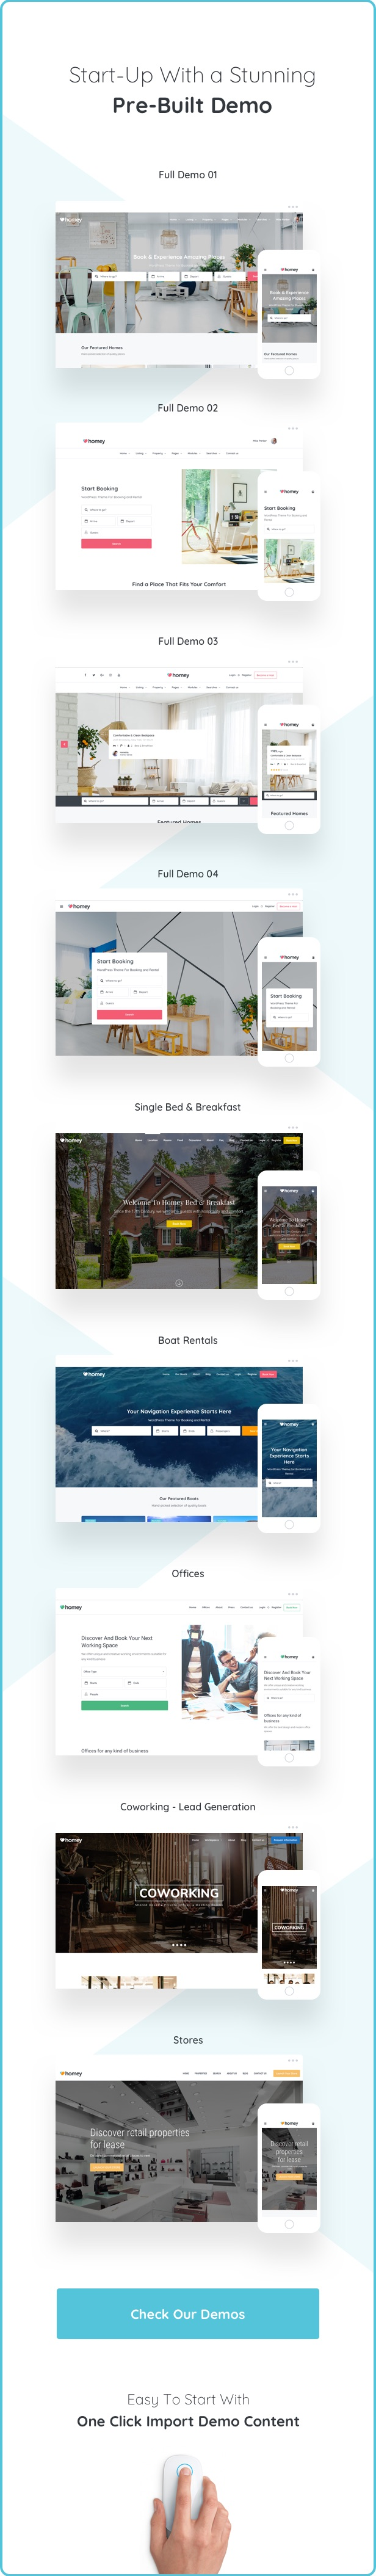 Homey - Booking and Rentals WordPress Theme - 6